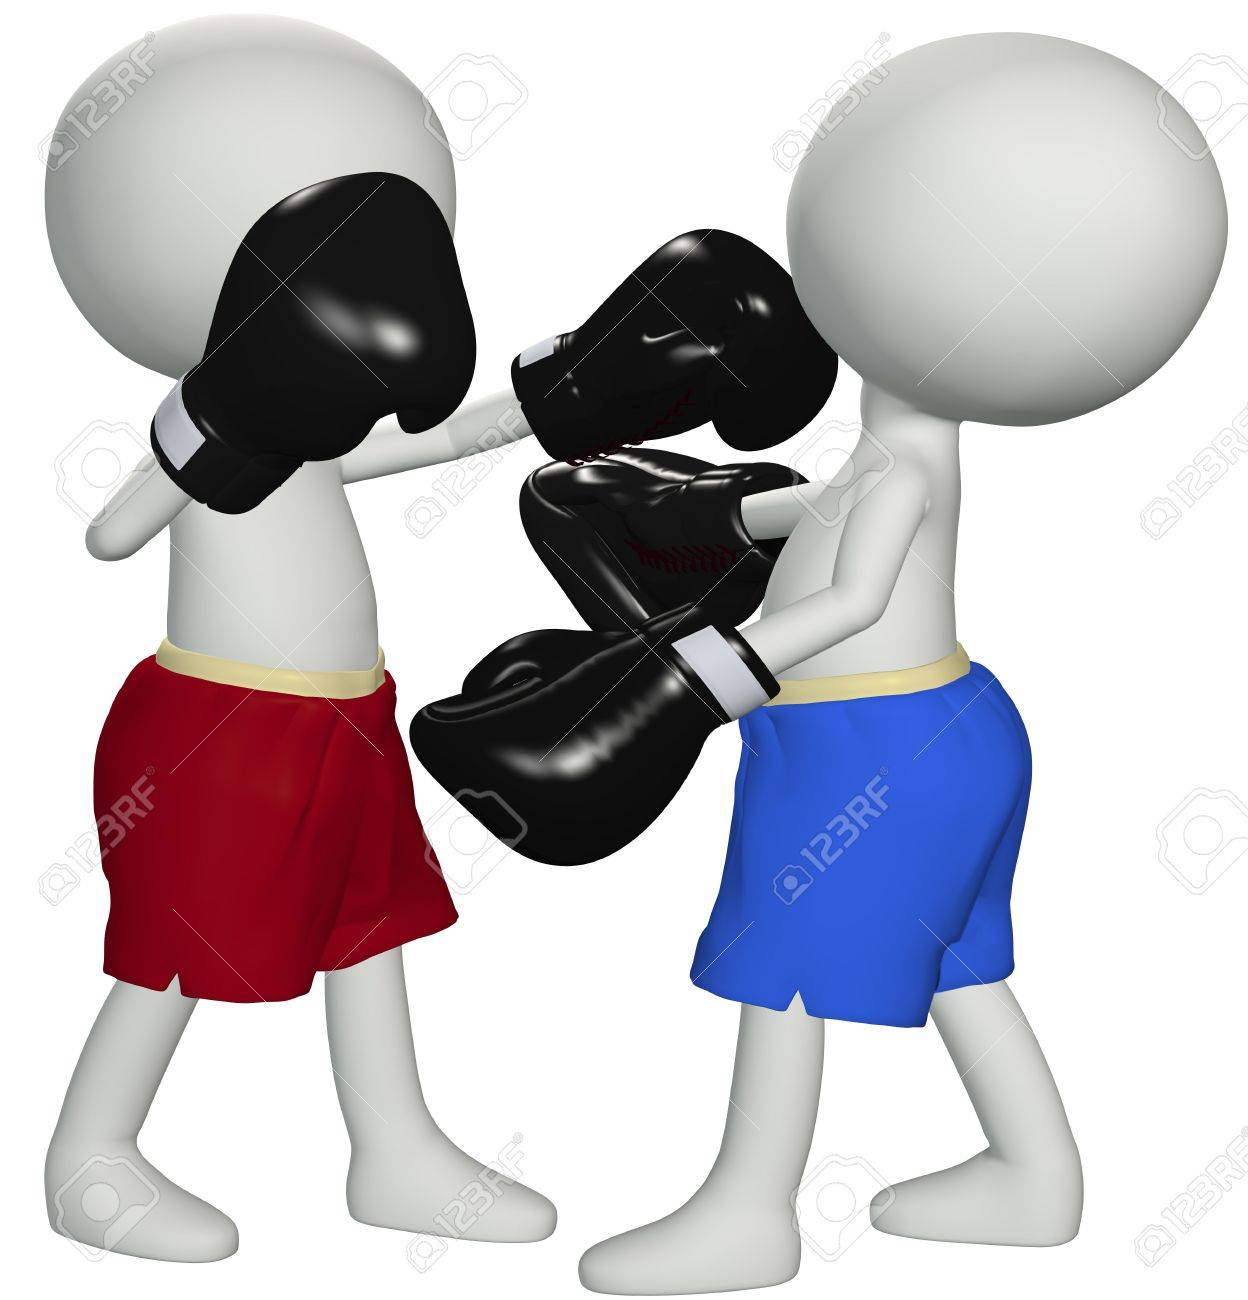 Two boxers square off in a championship boxing match prize fight Stock Photo - 8172952